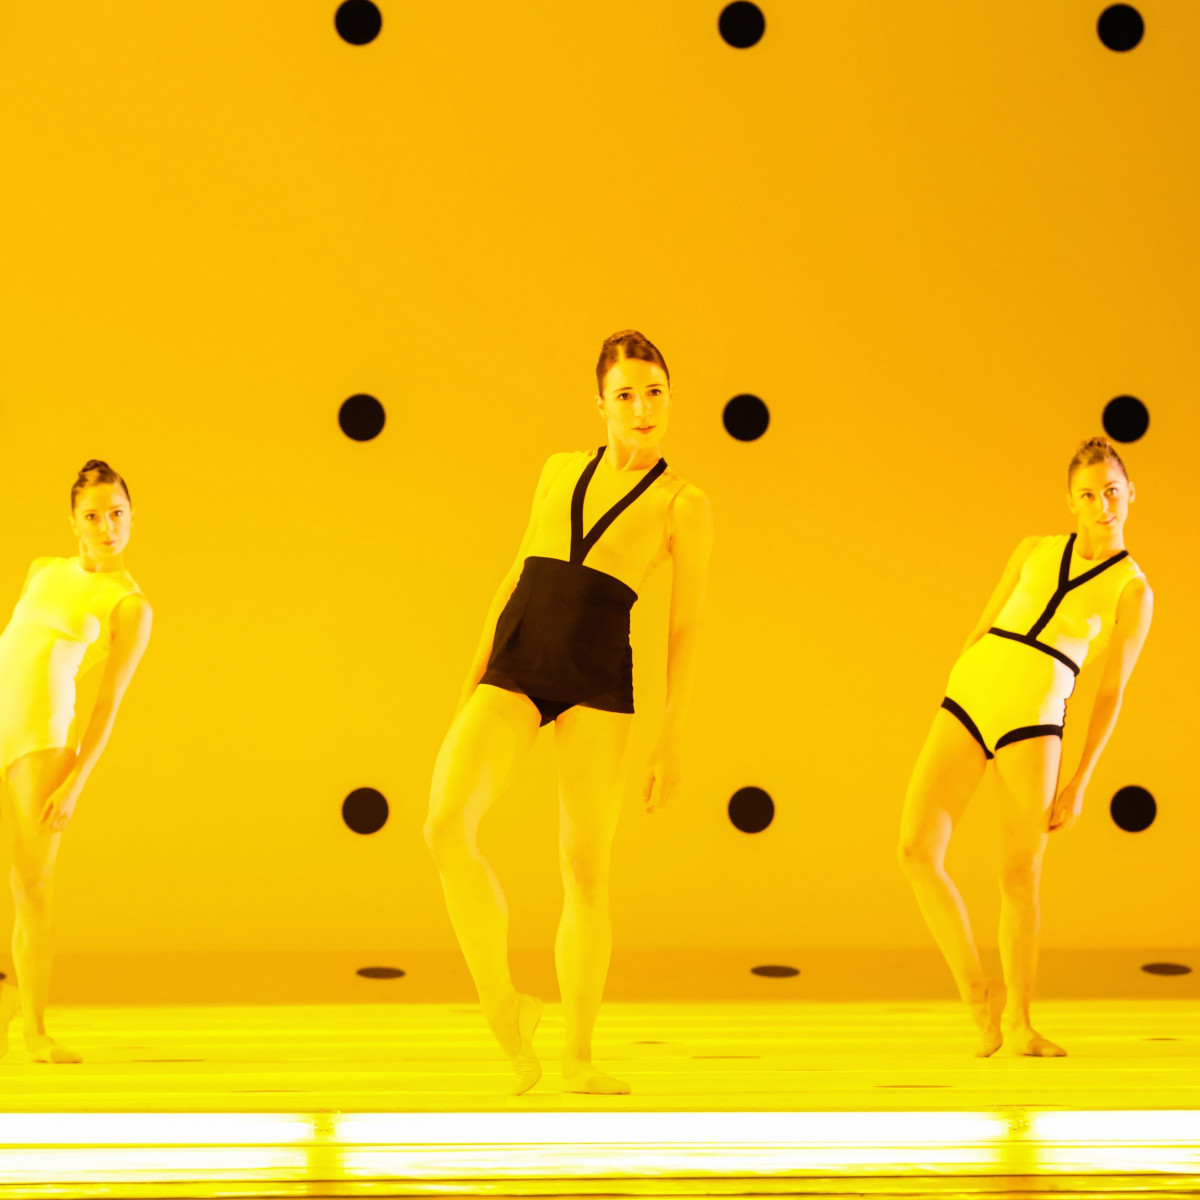 Dyad artists of the Houston Ballet, choreographer Wayne McGregor